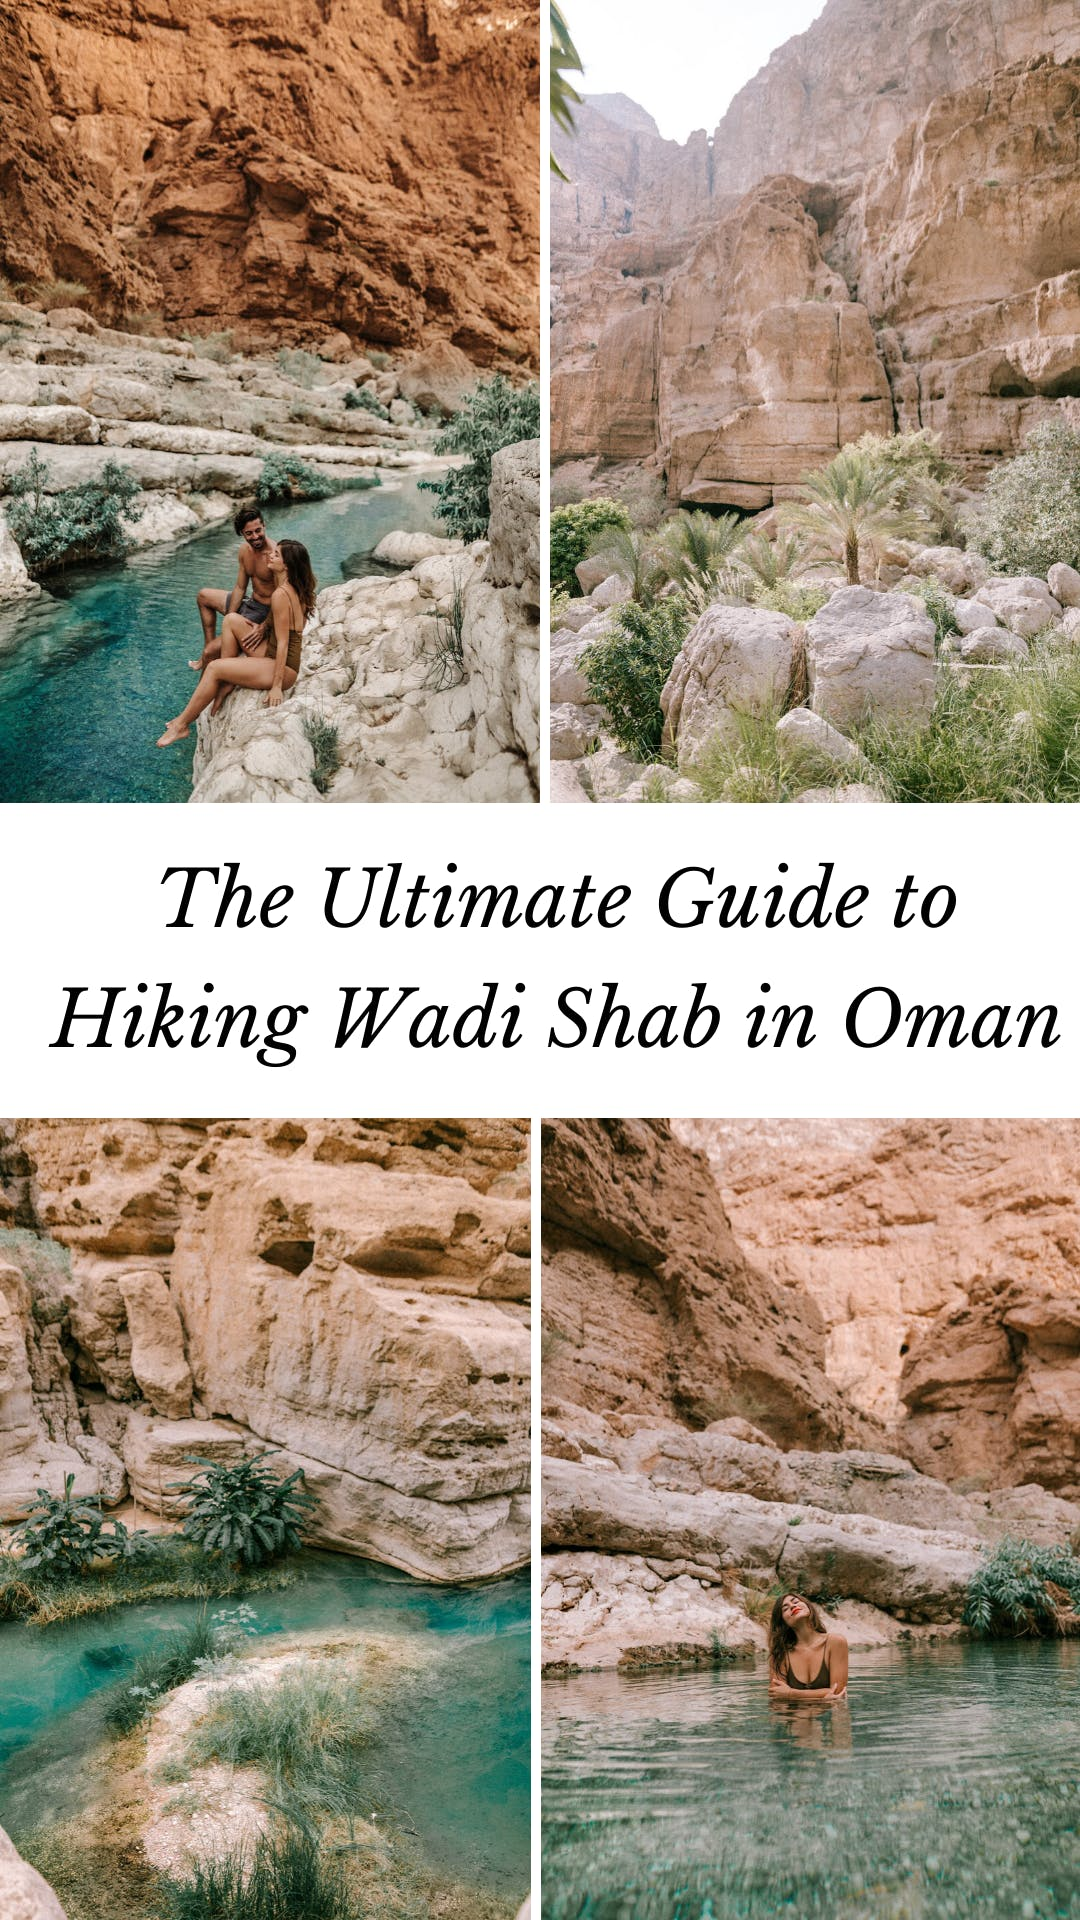 For an adventure in Oman, hike into Wadi Shab. Click here for the ultimate guide to the best hike in Oman! #oman #middleeast #travel | Oman Wadi Shab | Wadi Shab in Oman | Wadi Shab Oman hike | Oman things to do in | Oman photography | Oman travel outfits | Oman travel woman | Oman travel destinations | Oman travel guide | Oman travel adventure | tips for travel to Oman | best places to travel in the Middle East | Oman travel tips | Oman travel photography | Middle East travel tips